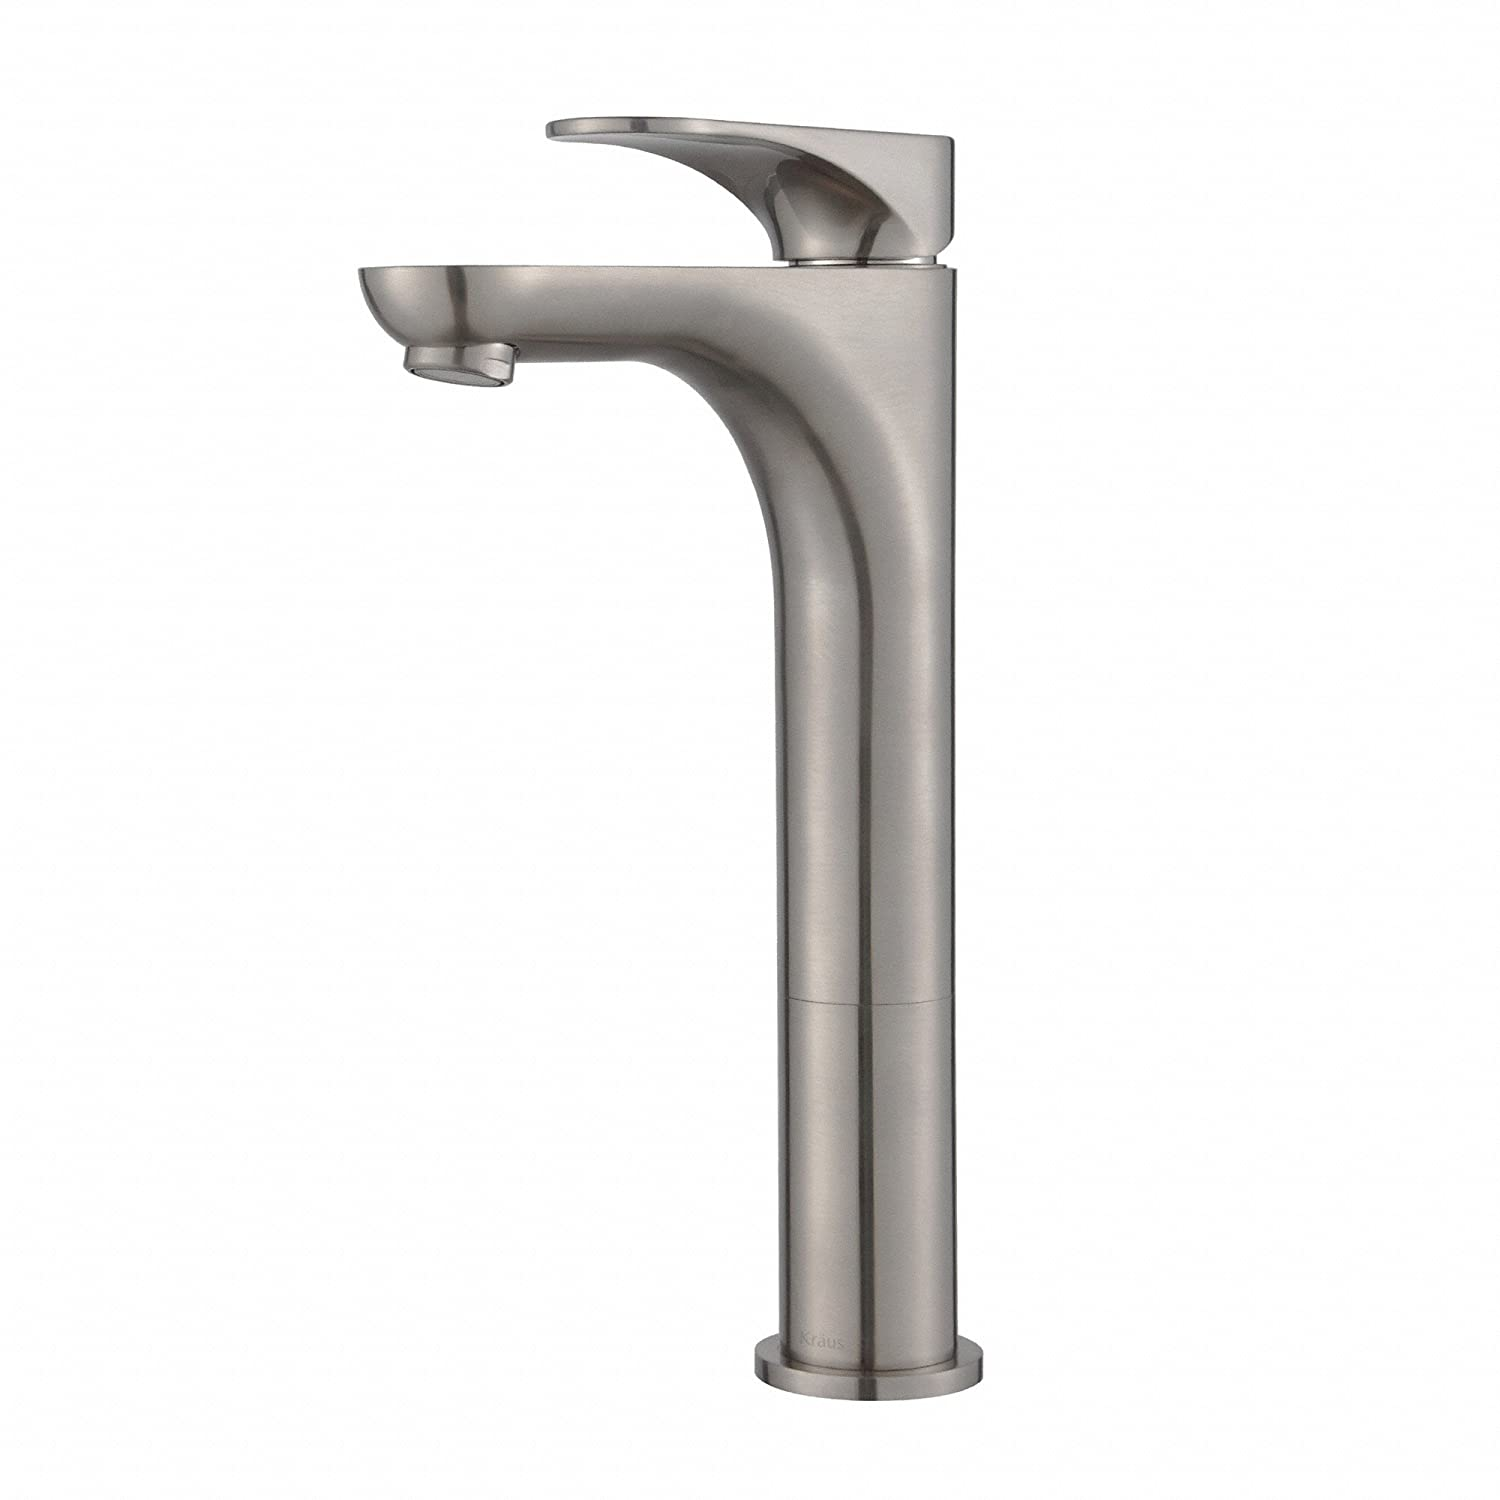 Kraus FVS 13900BN Aquila Single Lever Vessel Bathroom Faucet, Brushed  Nickel     Amazon.com